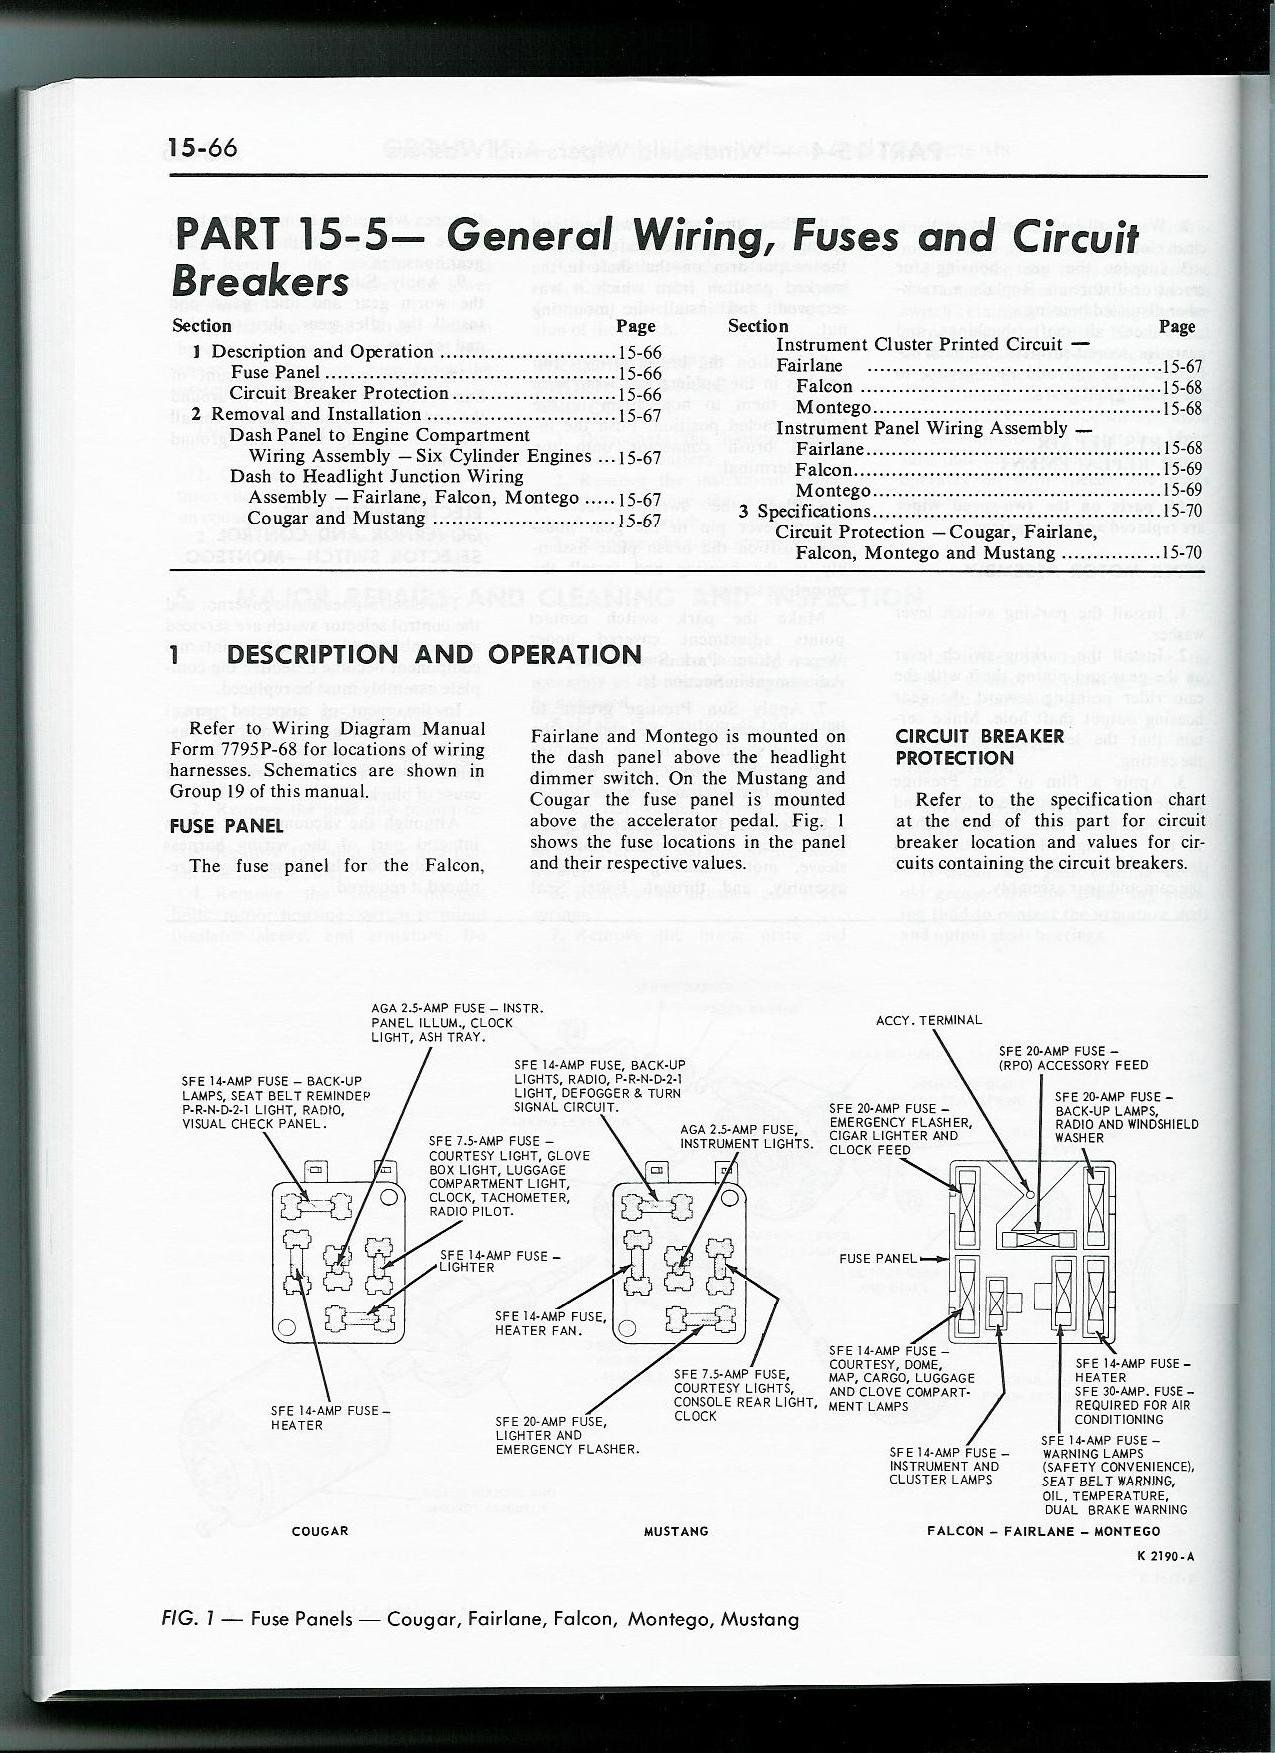 70 Mustang Fuse Box Wiring Diagram Block And Schematic Diagrams 1984 1964 Comet U2022 Rh Arcomics Co 1969 1993